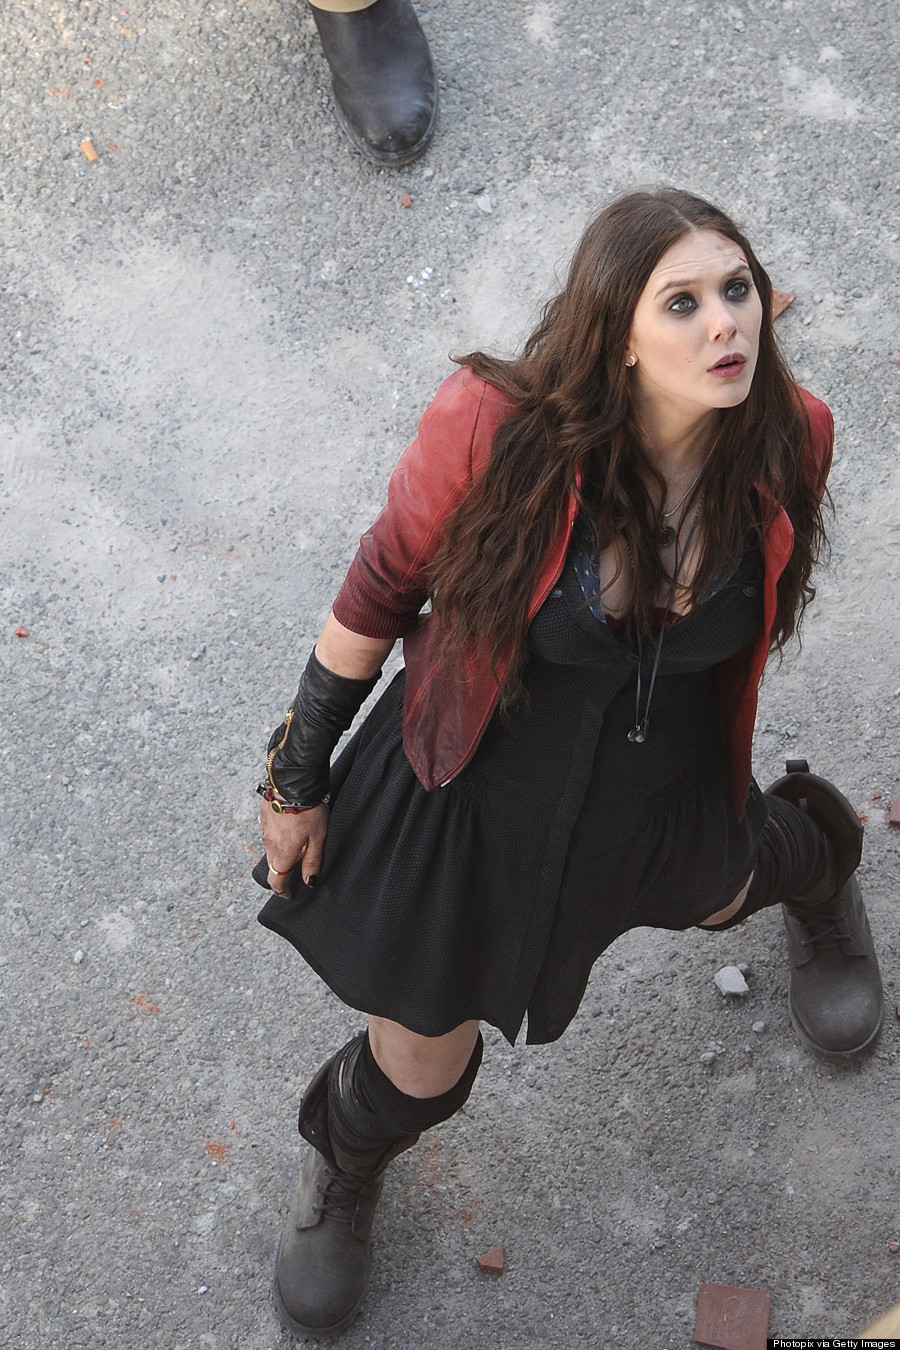 Elizabeth Olsen in 'Avengers: Age of Ultron'